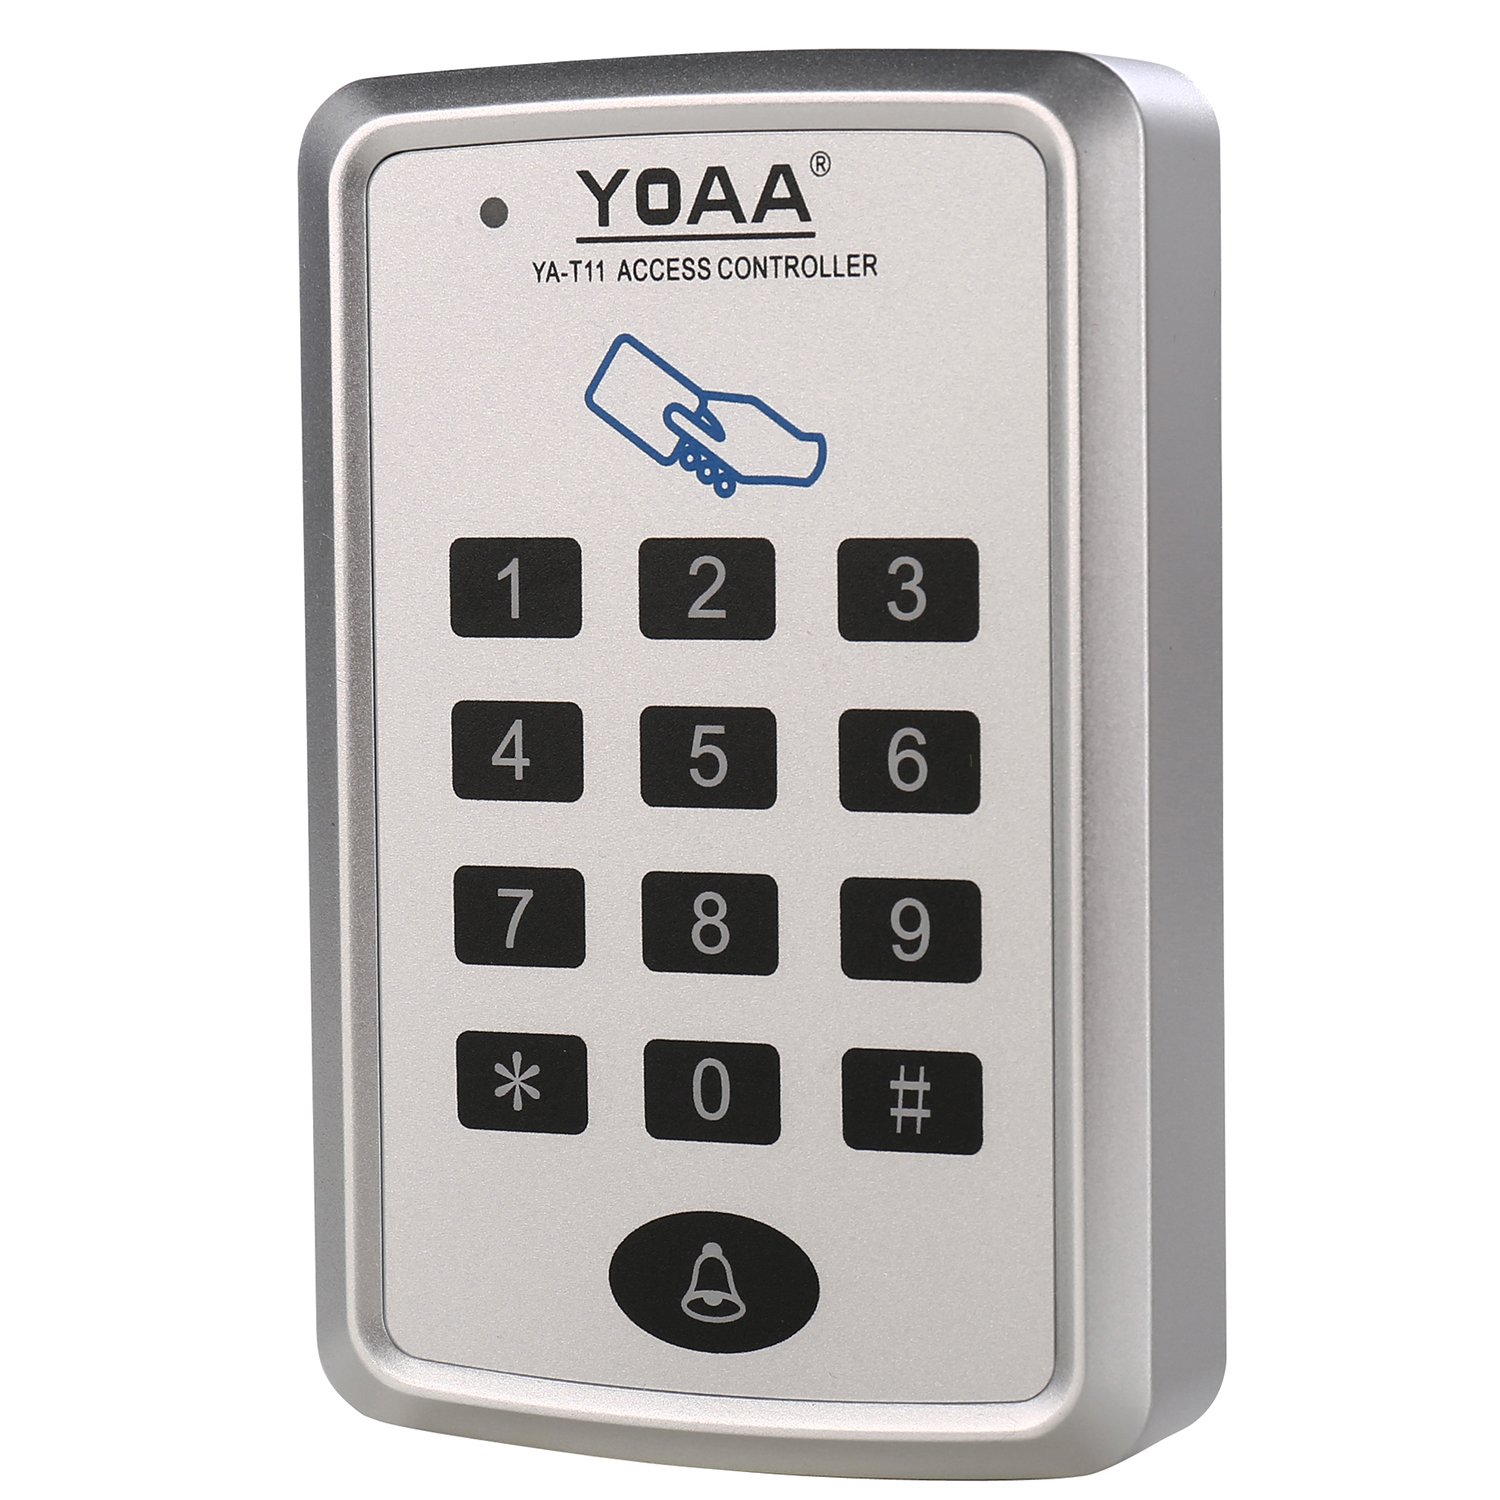 MATEE Access Control Keypad For Single Door With 1000 Users Built-in RFID 125kHz EM-ID Card Reader For Security System